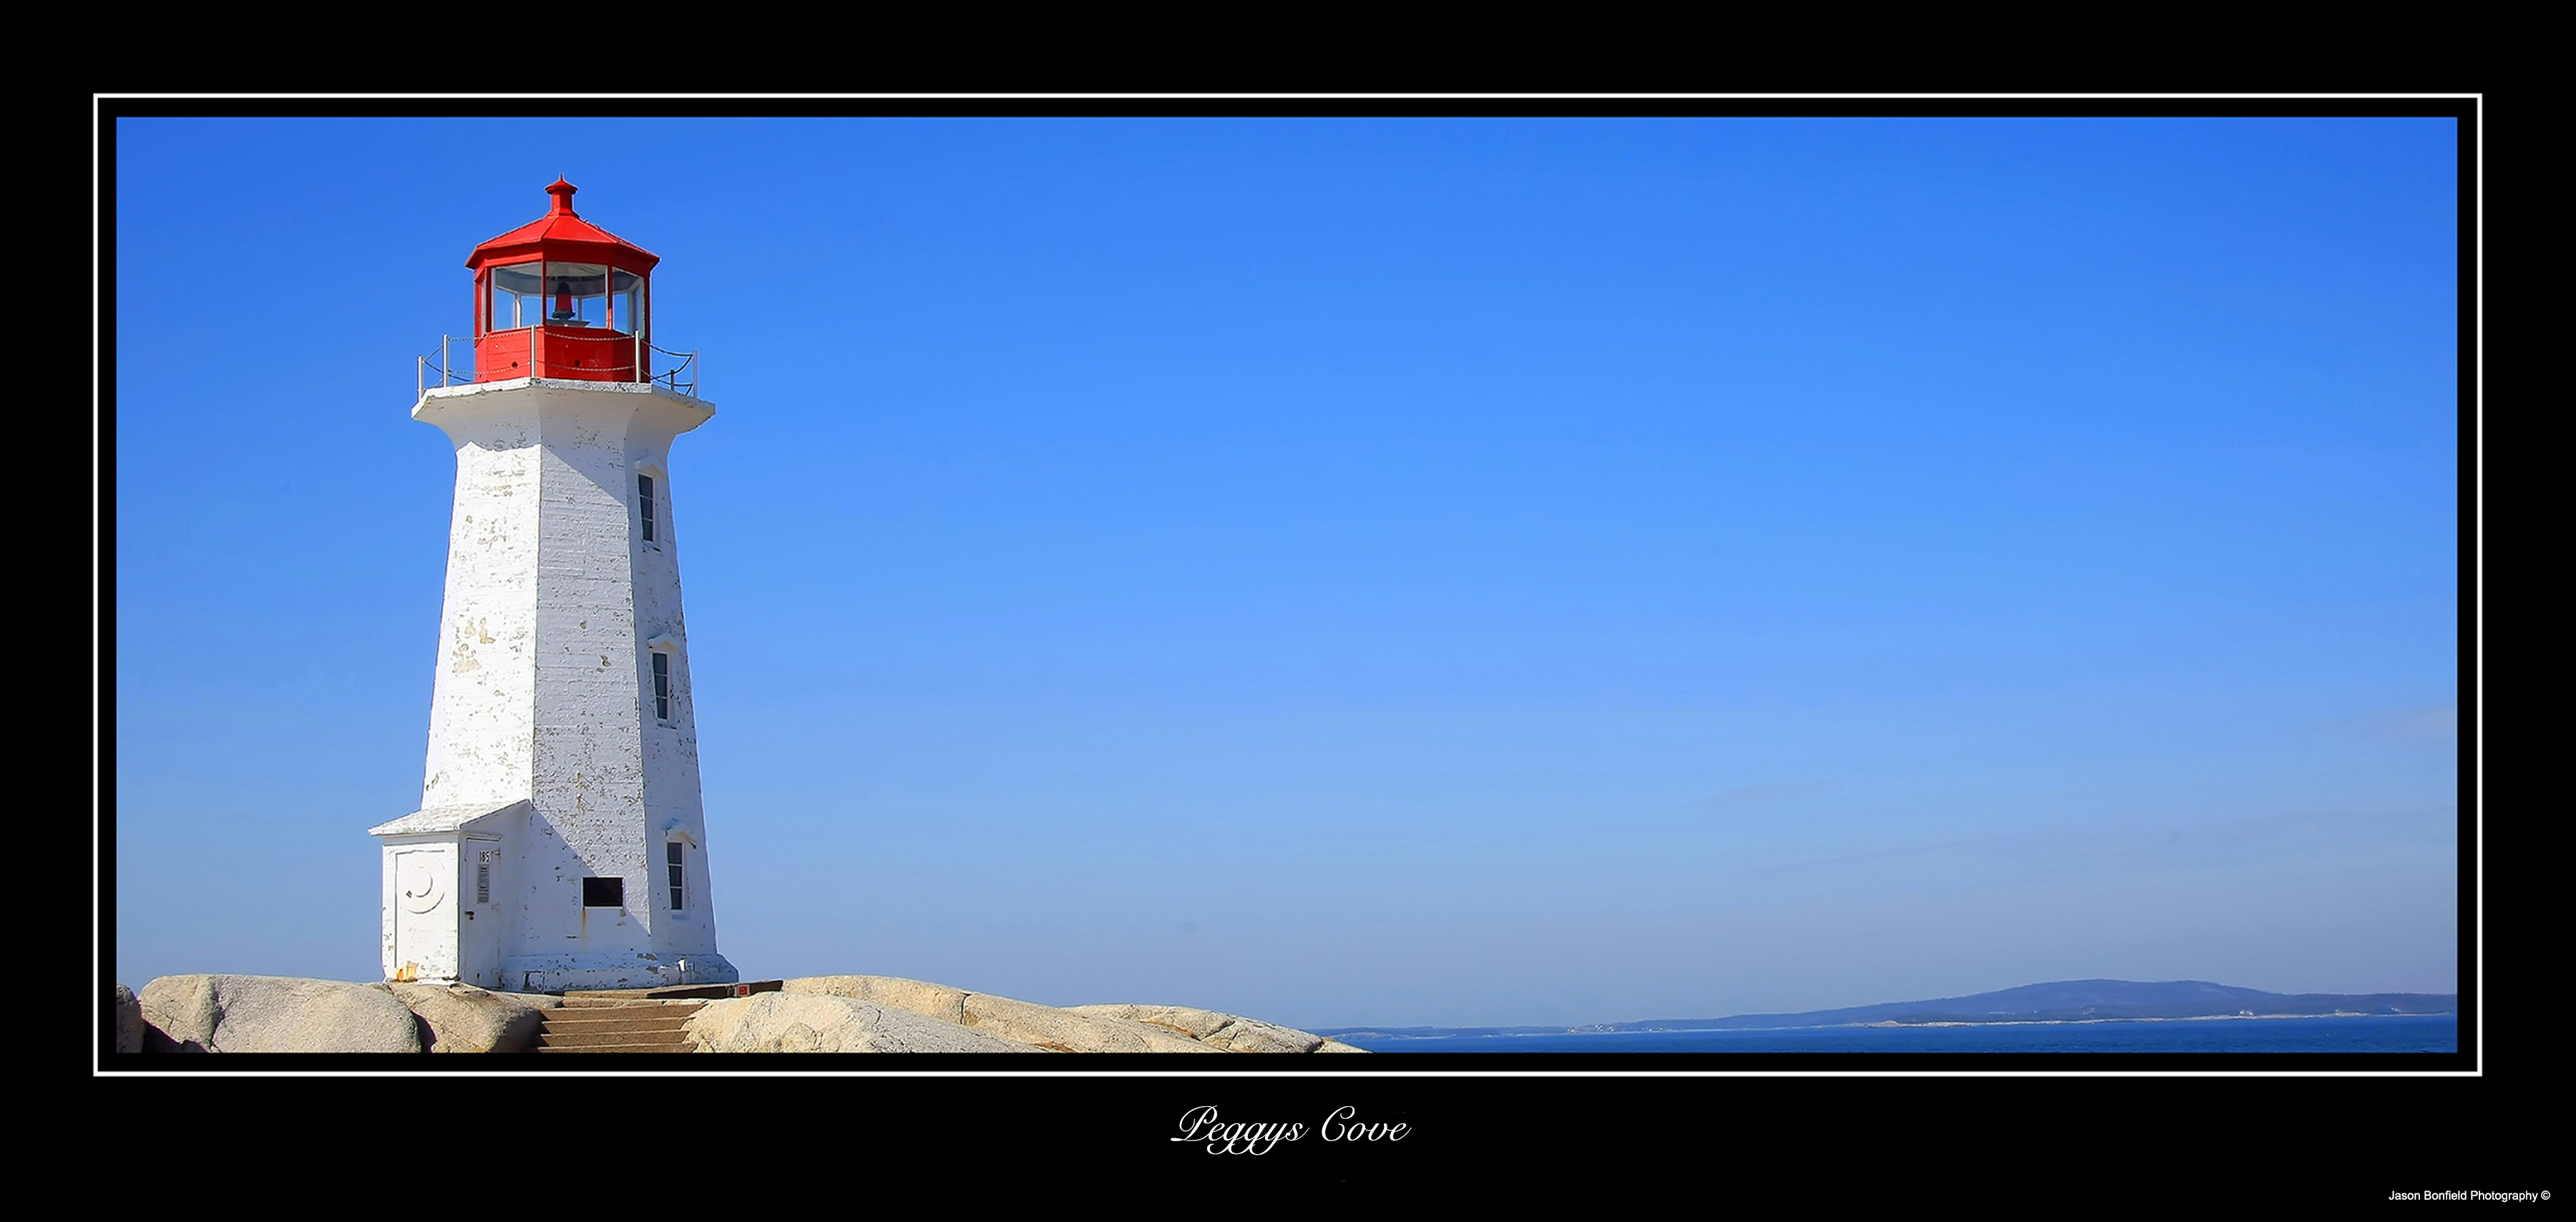 Panoramic landscape picture Peggys Cove Lighthouse, Nova Scotia, Canada on a clear blue day.